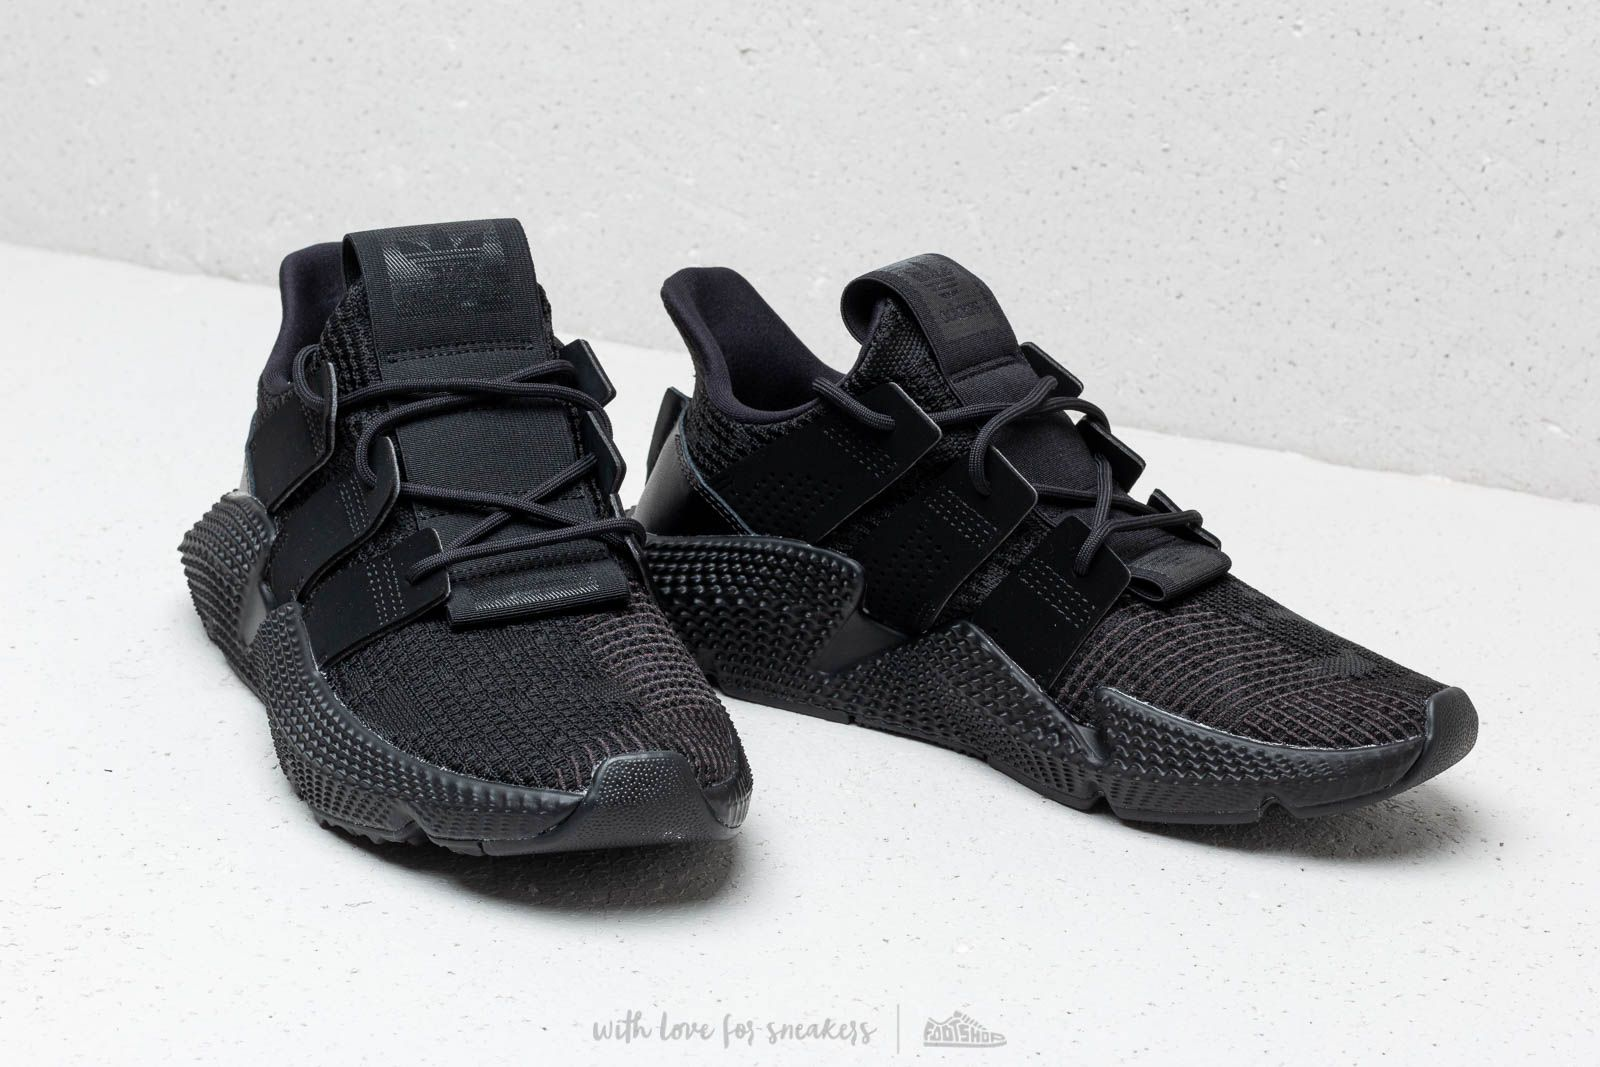 official photos b005c 0df03 adidas Prophere Core Black  Core Black  Ftw White la un preț excelent 526  Lei